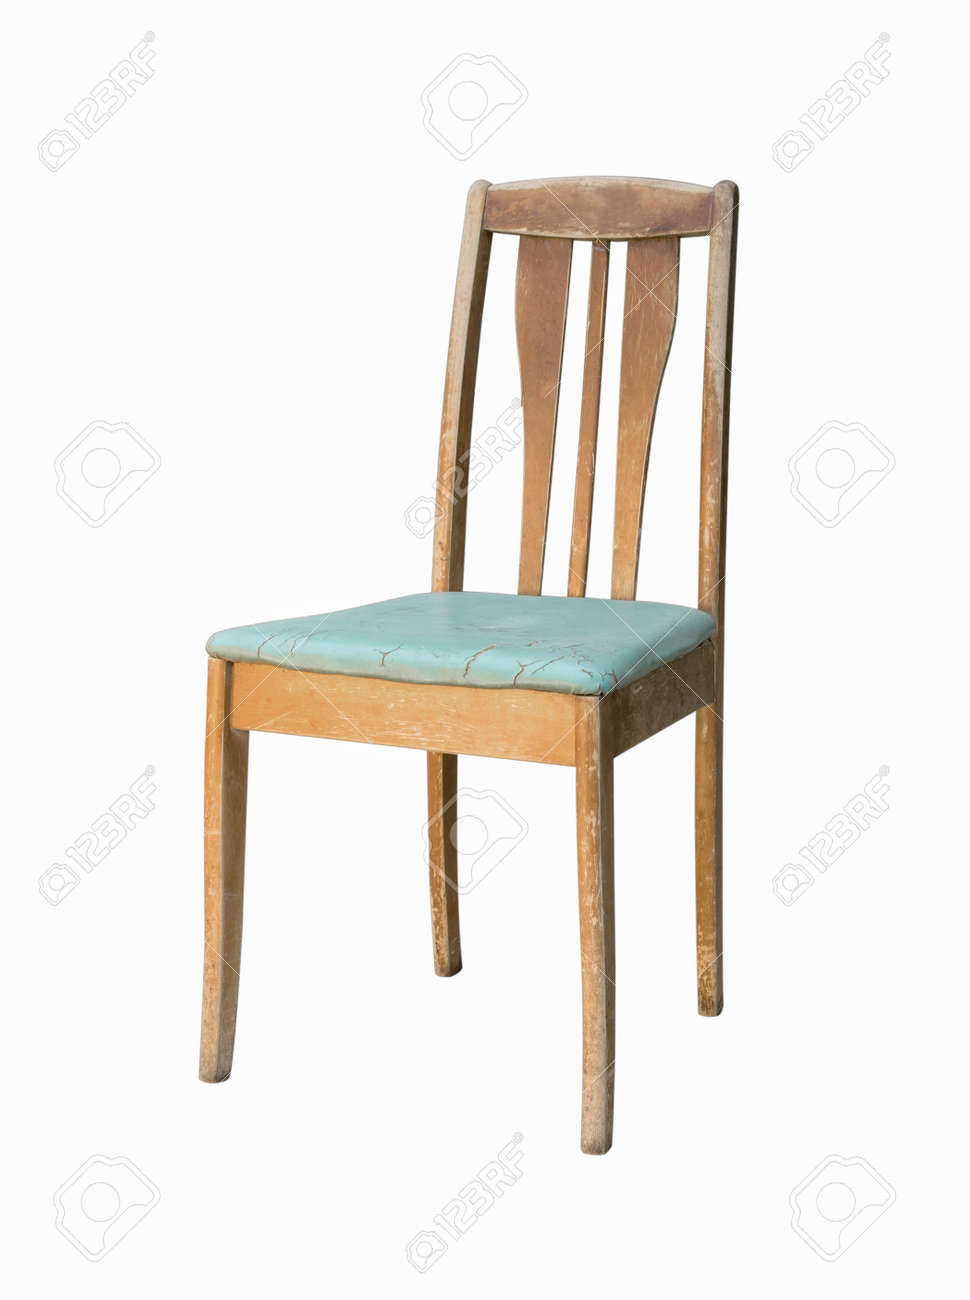 Vintage Wooden Kitchen Chair Isolate On White Background Stock Photo Picture And Royalty Free Image Image 78013822